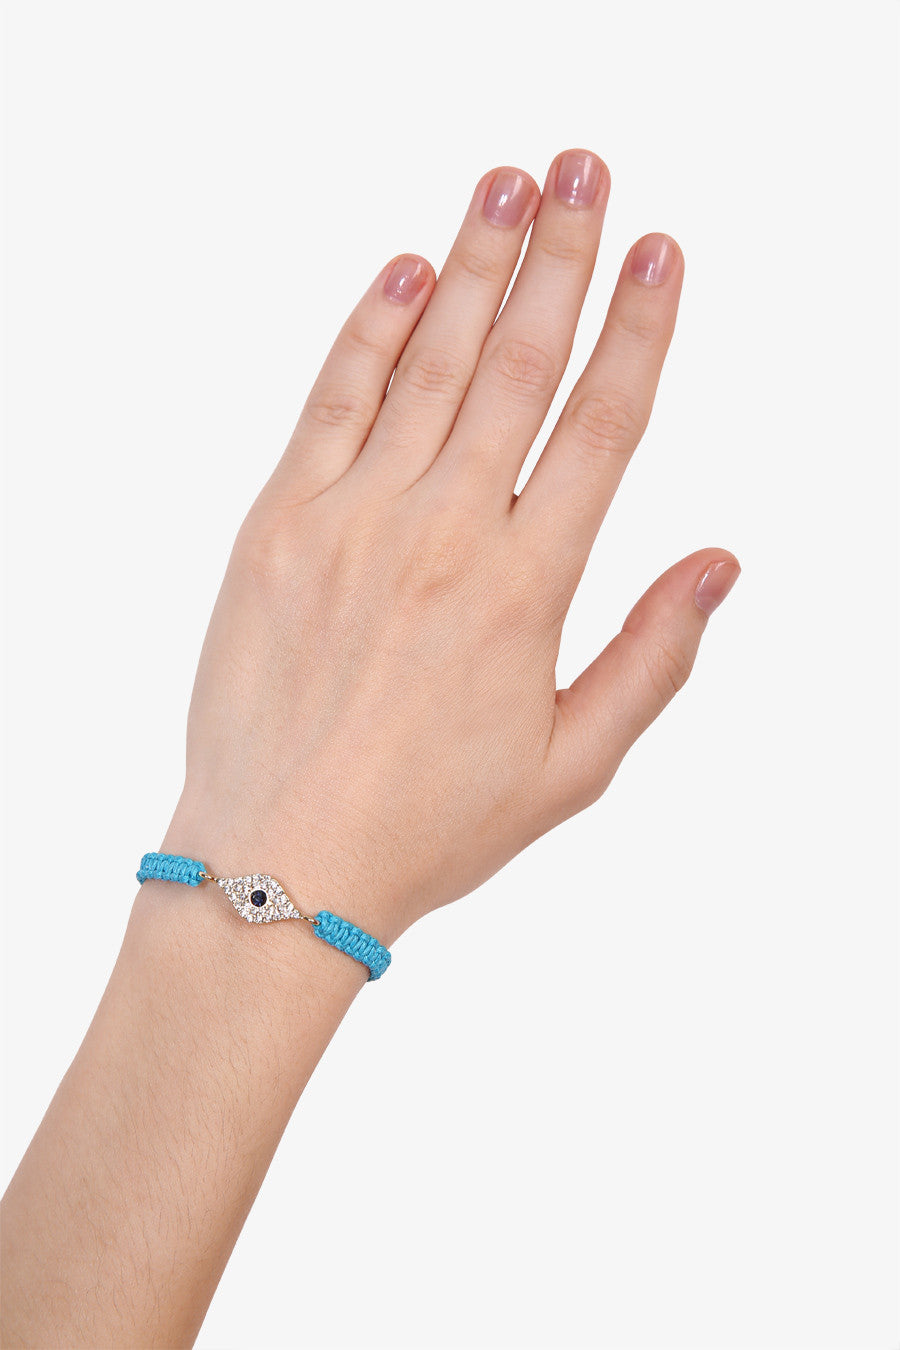 Eye Blue Braided Bracelet